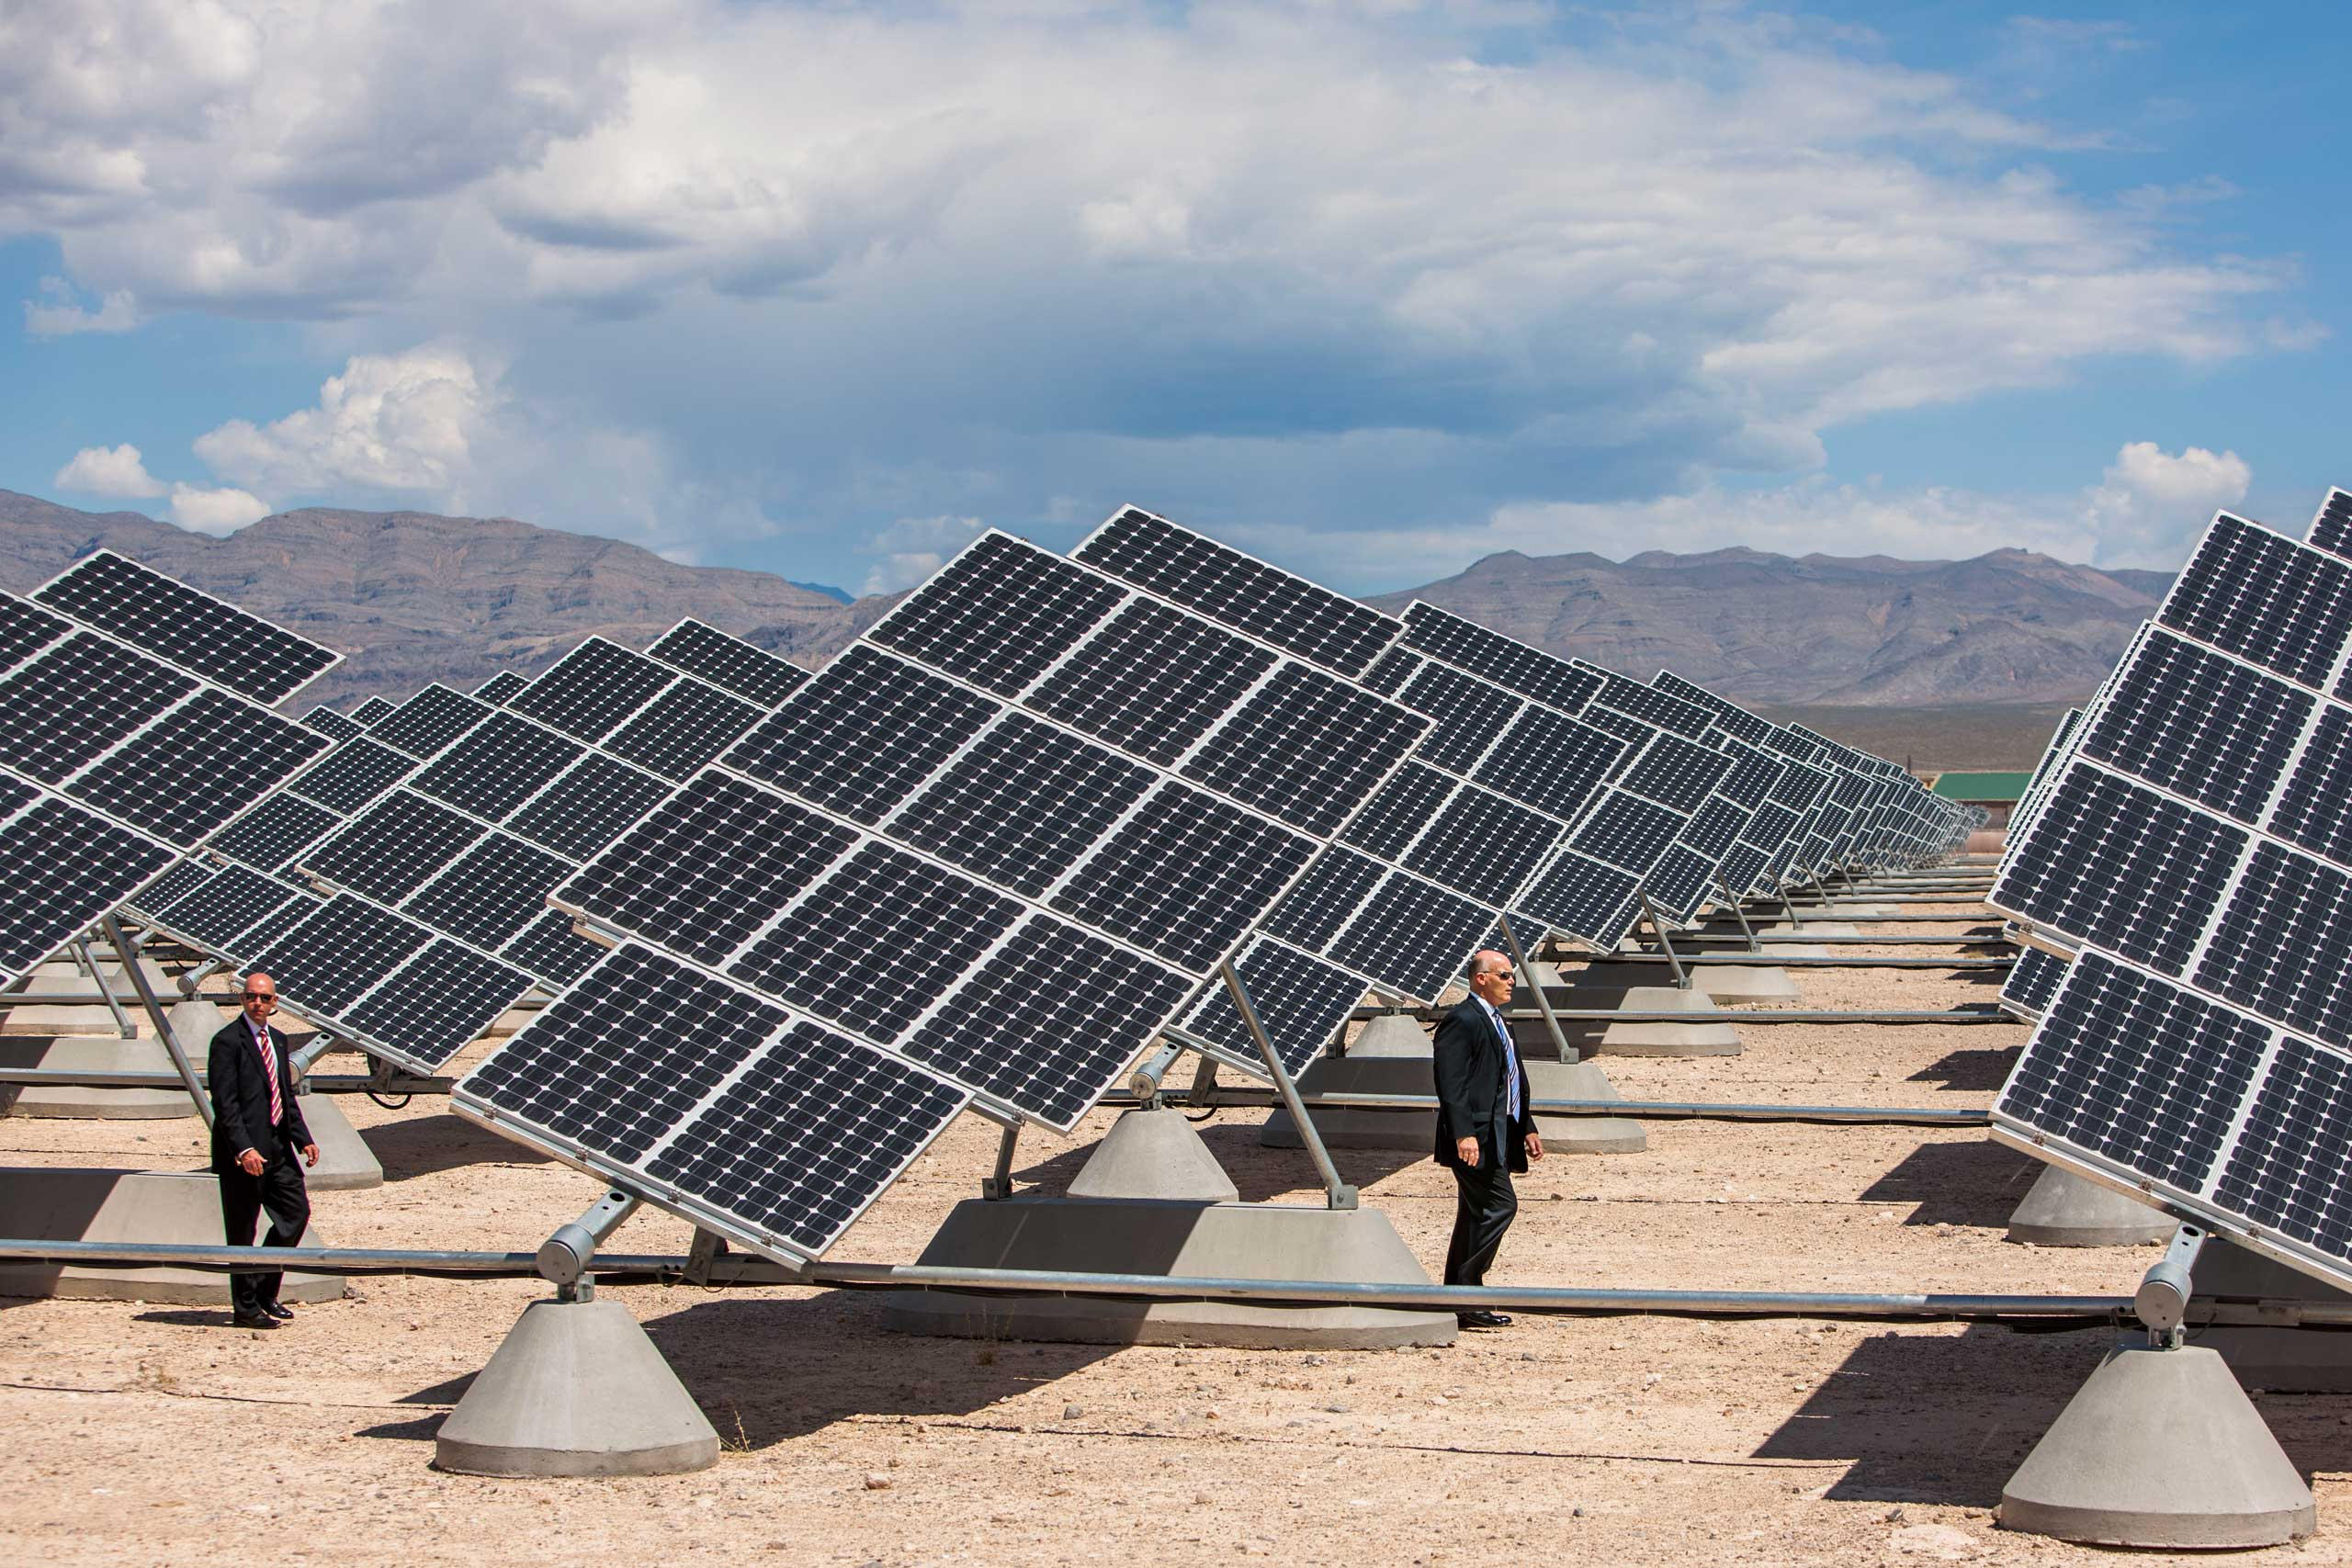 Solar panels make good camouflage as Clancy and another Secret Service agent accompany the President and Senate Majority Leader Harry Reid at Nellis Air Force Base in Nevada, on May 27, 2009.